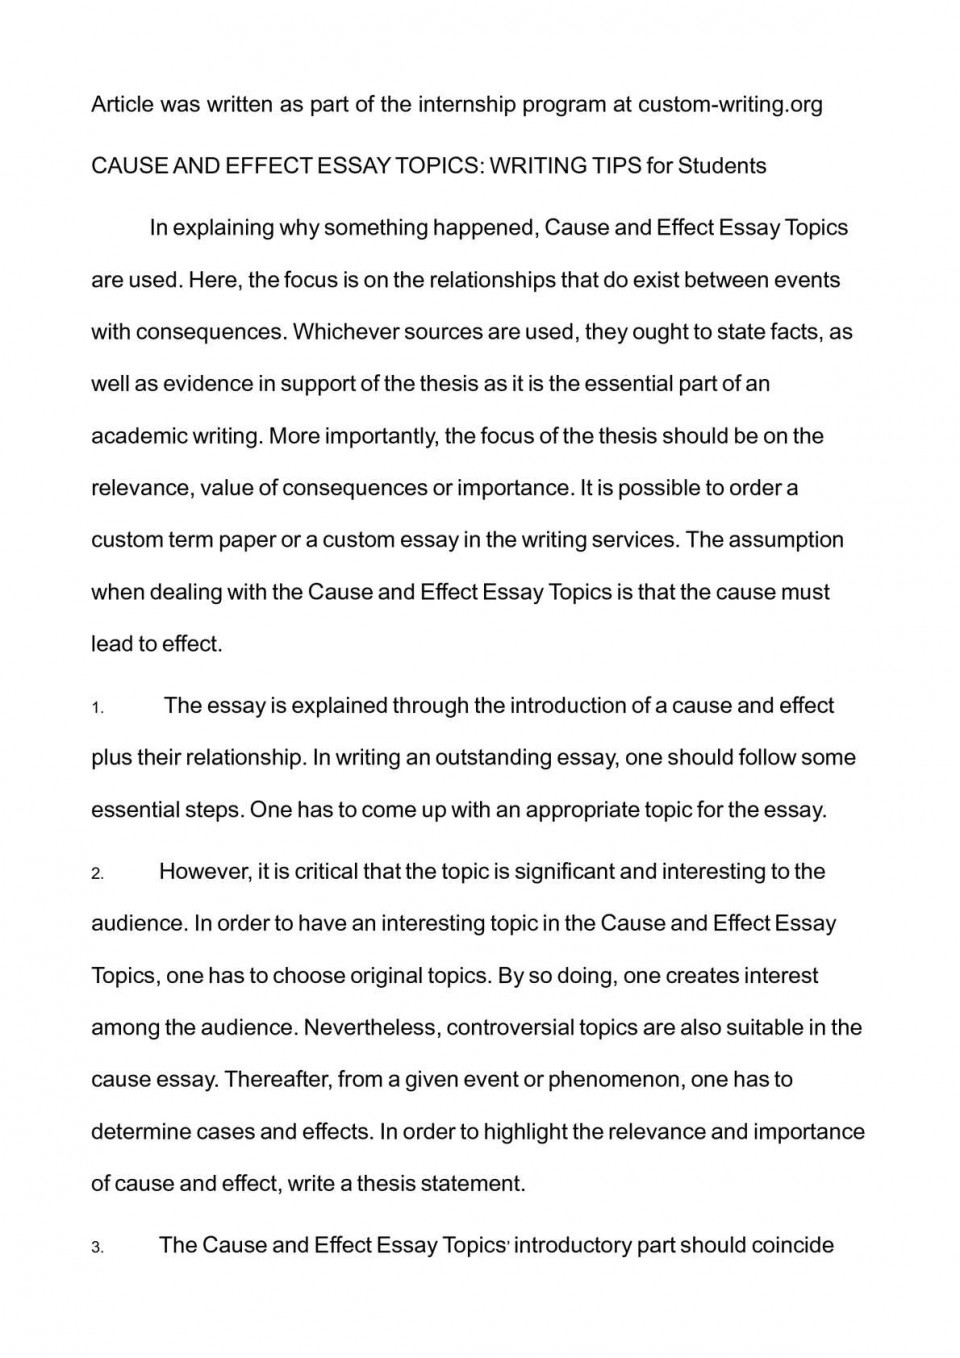 002 Essay Example P1 Cause And Effect Exceptional Topics For College Students High School Basketball 960